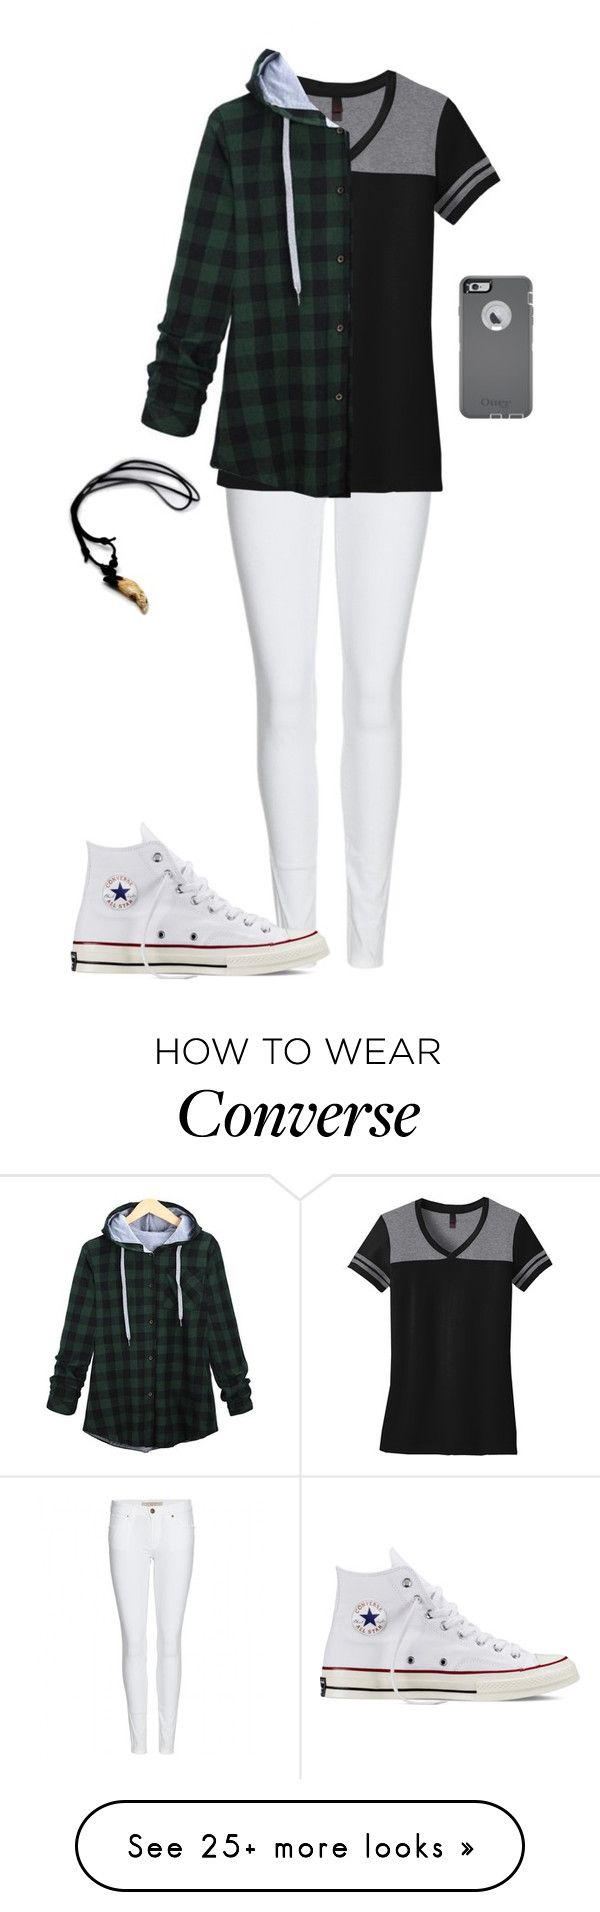 """Untitled #552"" by breemanor on Polyvore featuring Burberry, Converse and OtterBox"